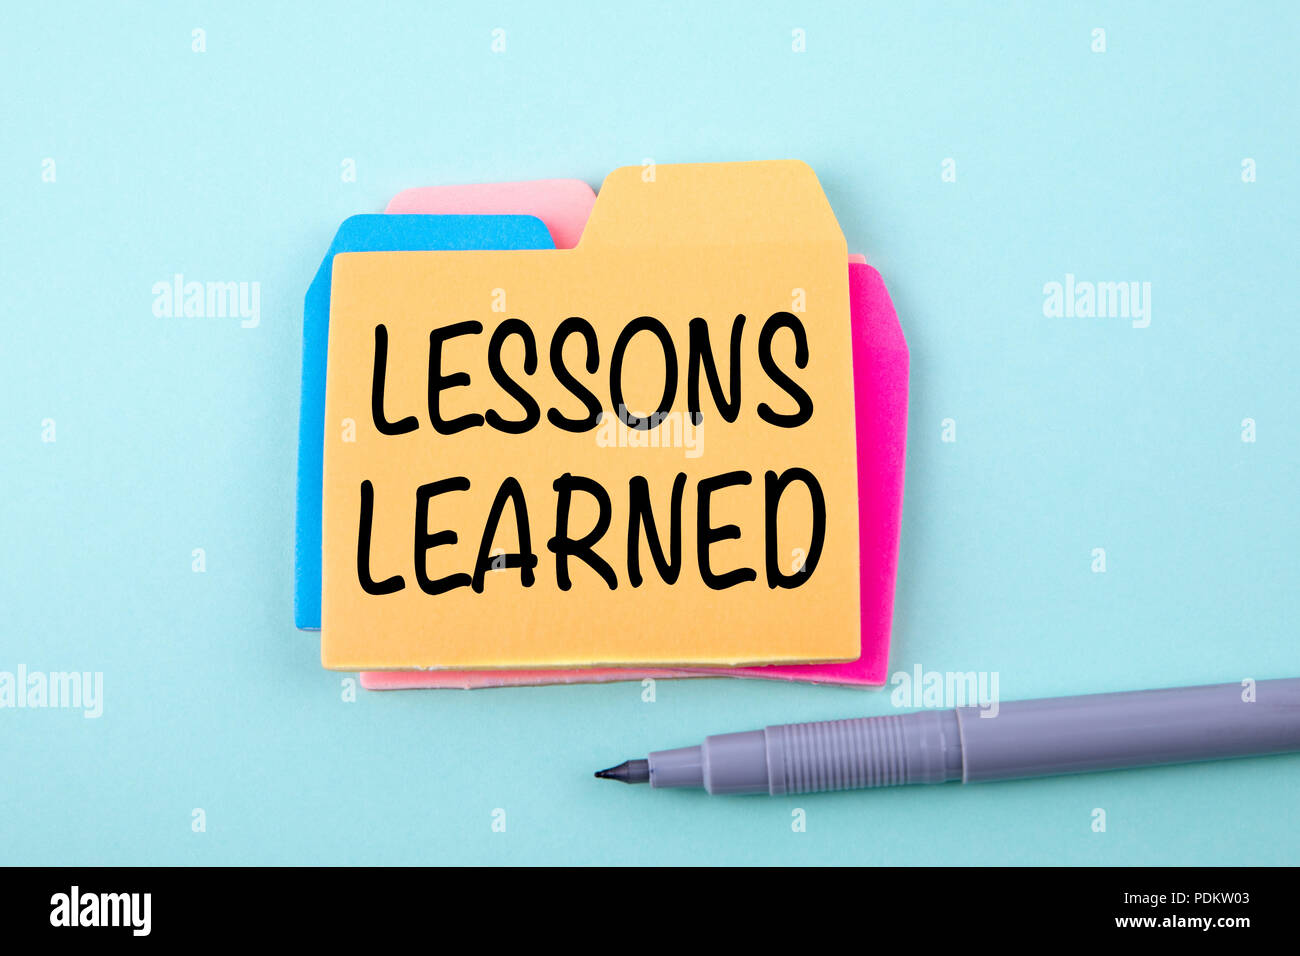 Lessons Learned. Education Concept - Stock Image